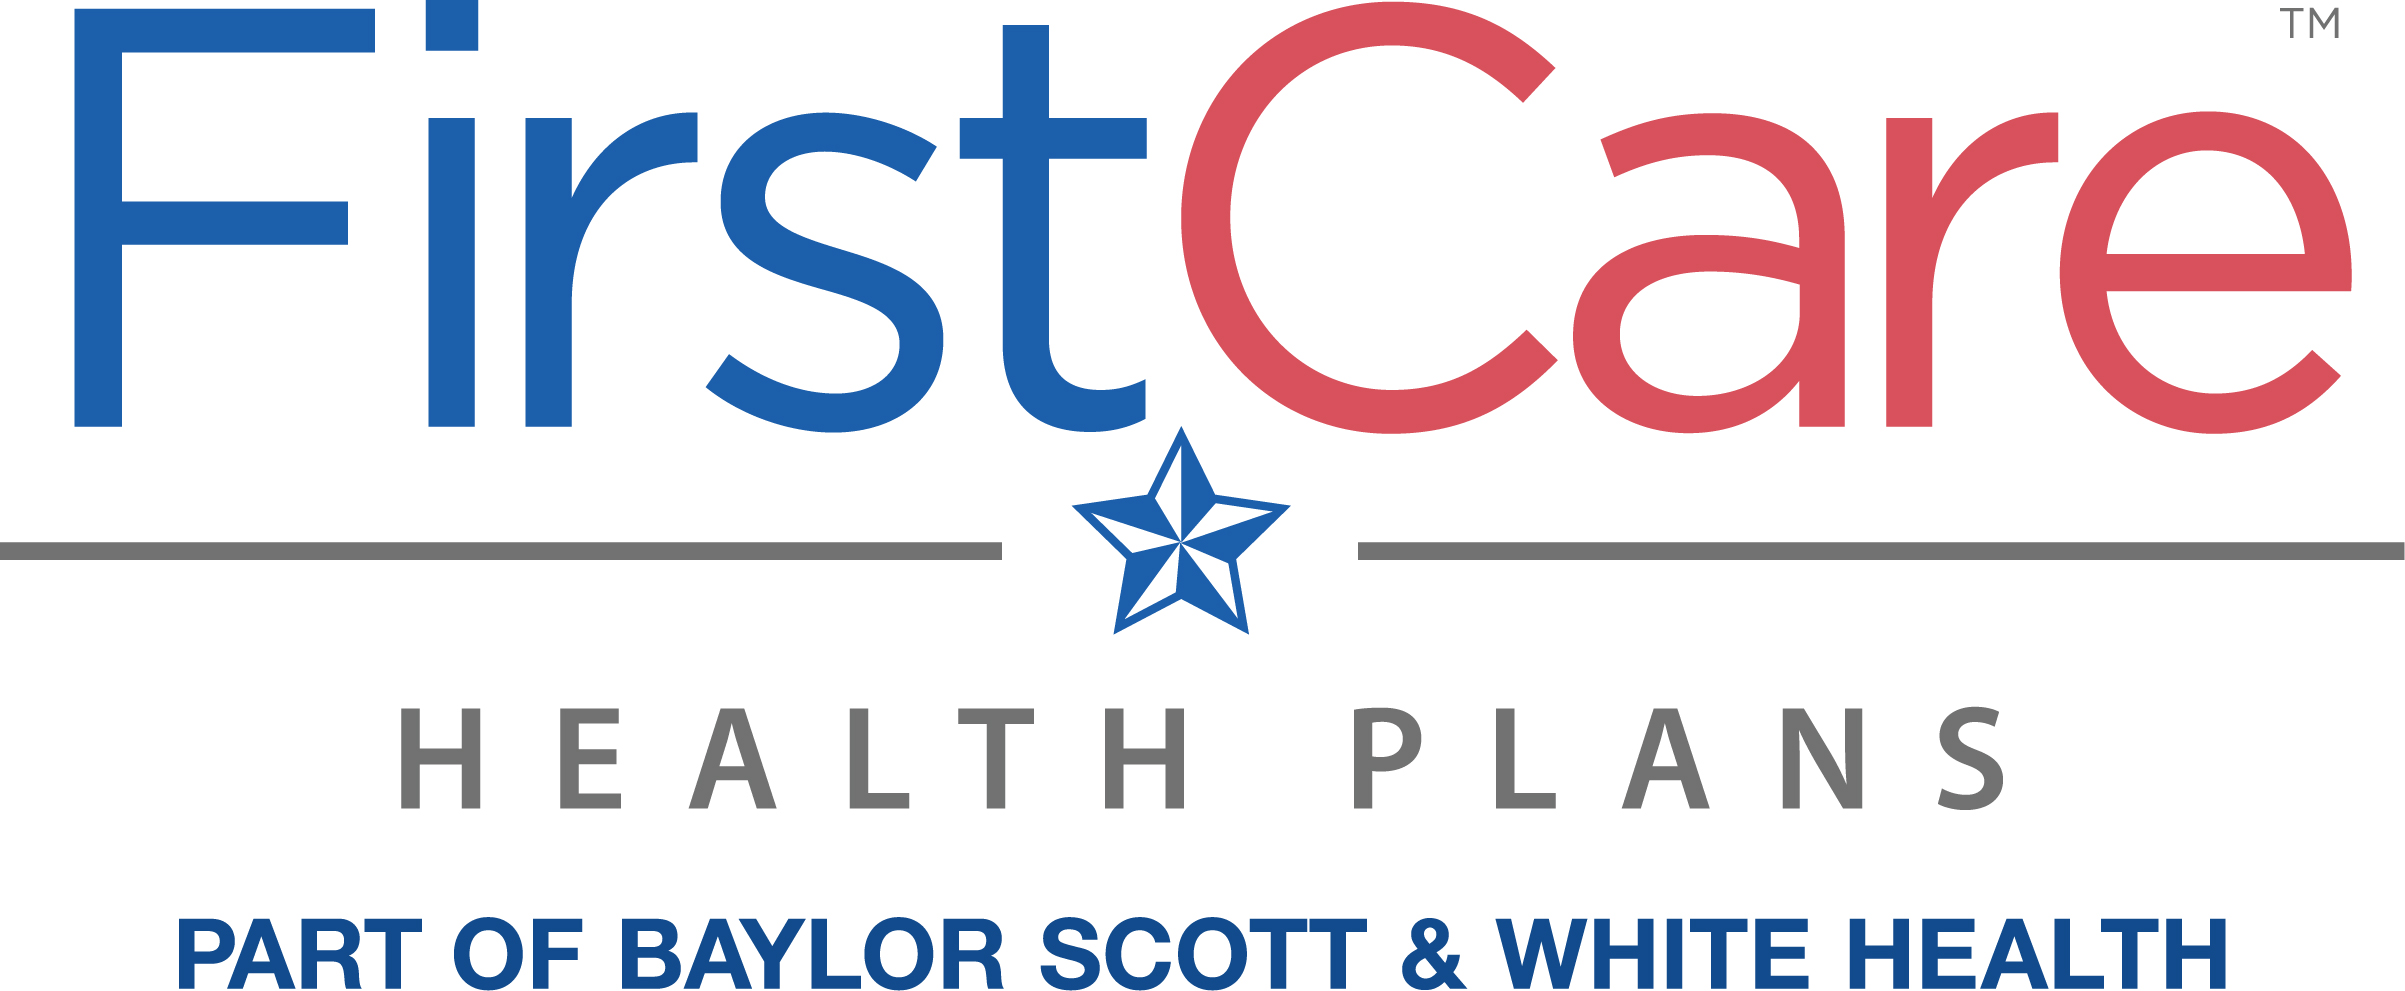 Firstcare Health Plan